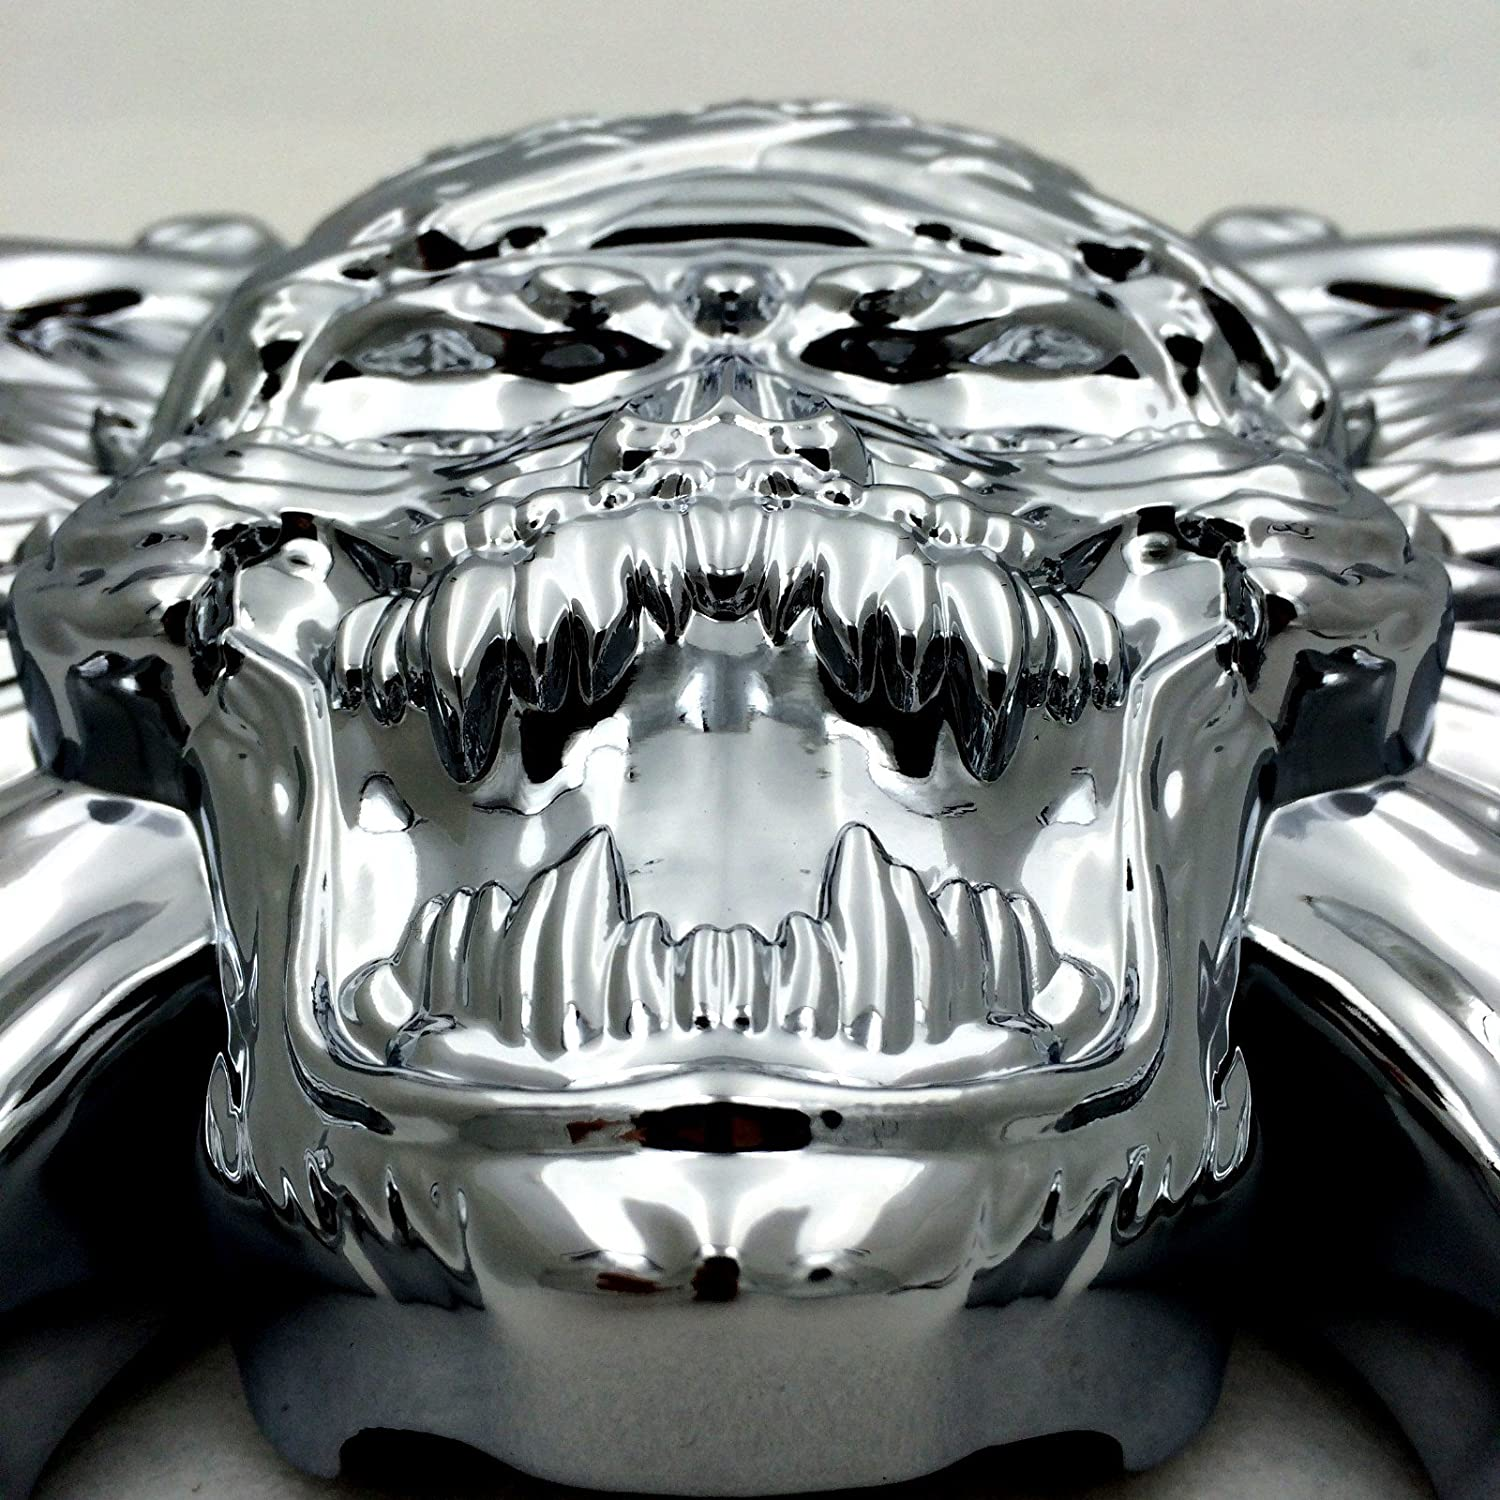 NBX Chrome Skull Zombie with Wing Cross Bone Horn Cover For Compatible with 1992-2005 2006 2007 2008 2009 2010 2011 2012 2013 2014 2015 Harley Davidson with Side MountCowbell and all V-rods